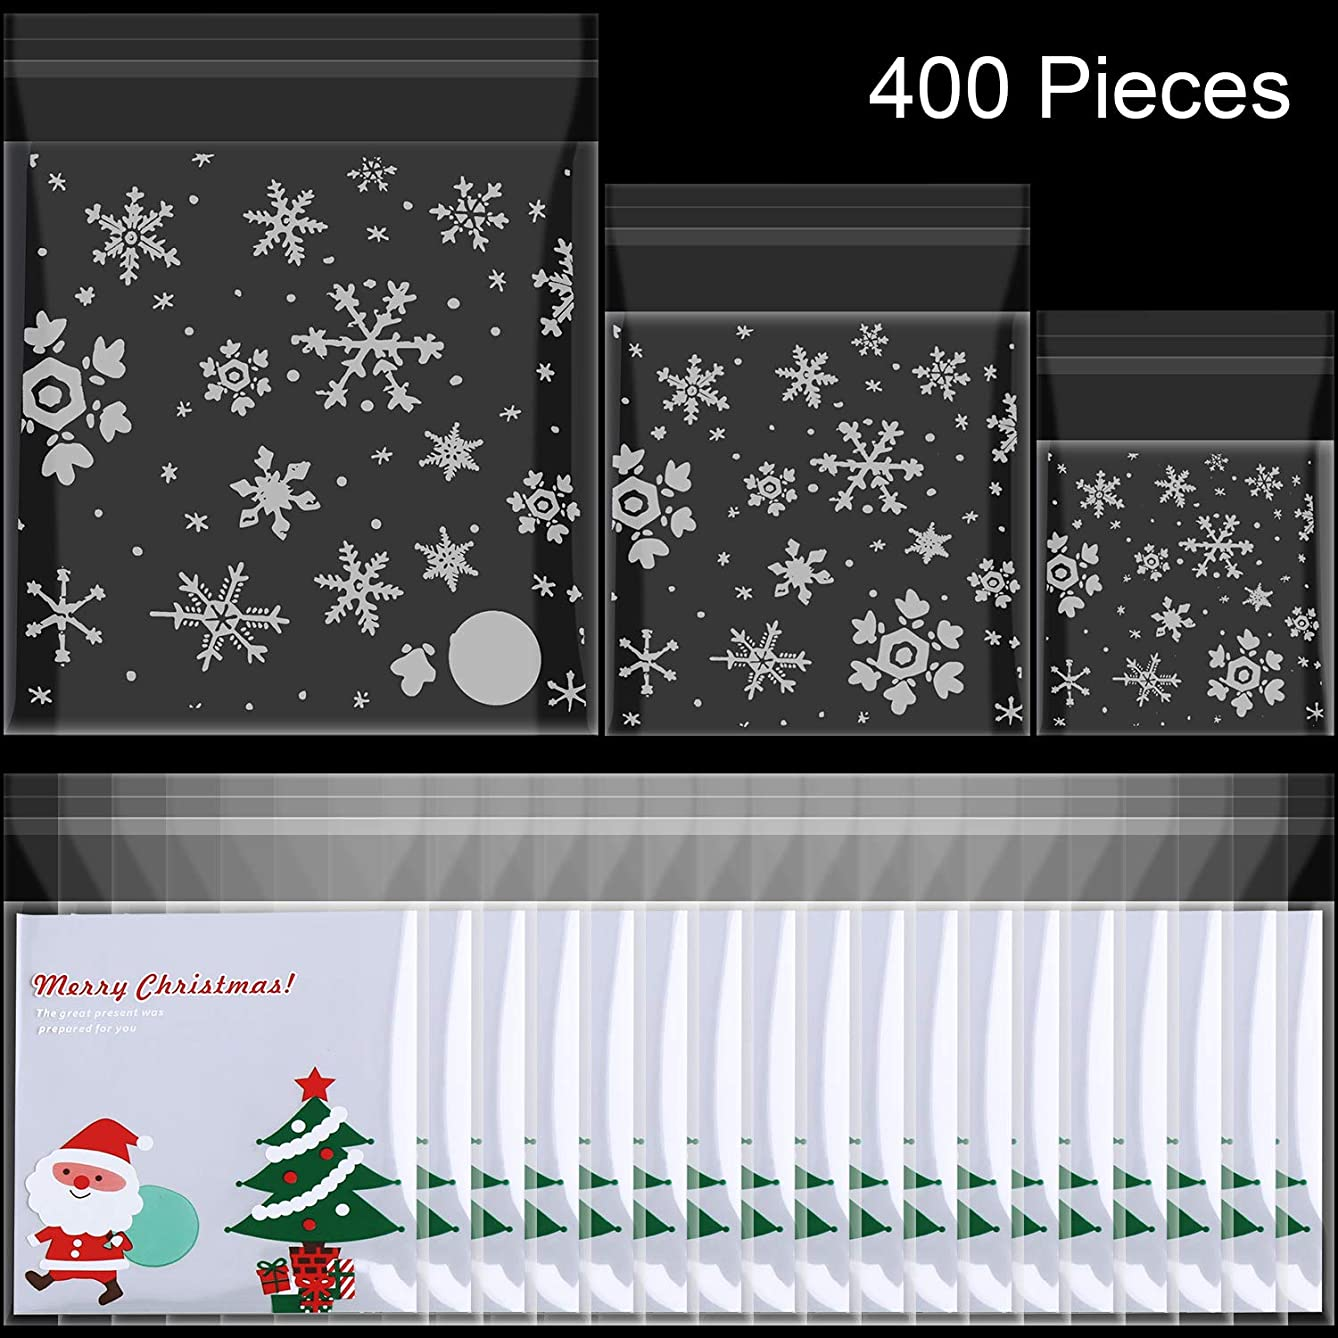 SATINIOR 400 Pieces Christmas Clear Treat Bags Self-Adhesive Cellophane Cookie Bakery Candy Bags Resealable Snowflakes Santa Claus Tree Pattern Gifts Bags